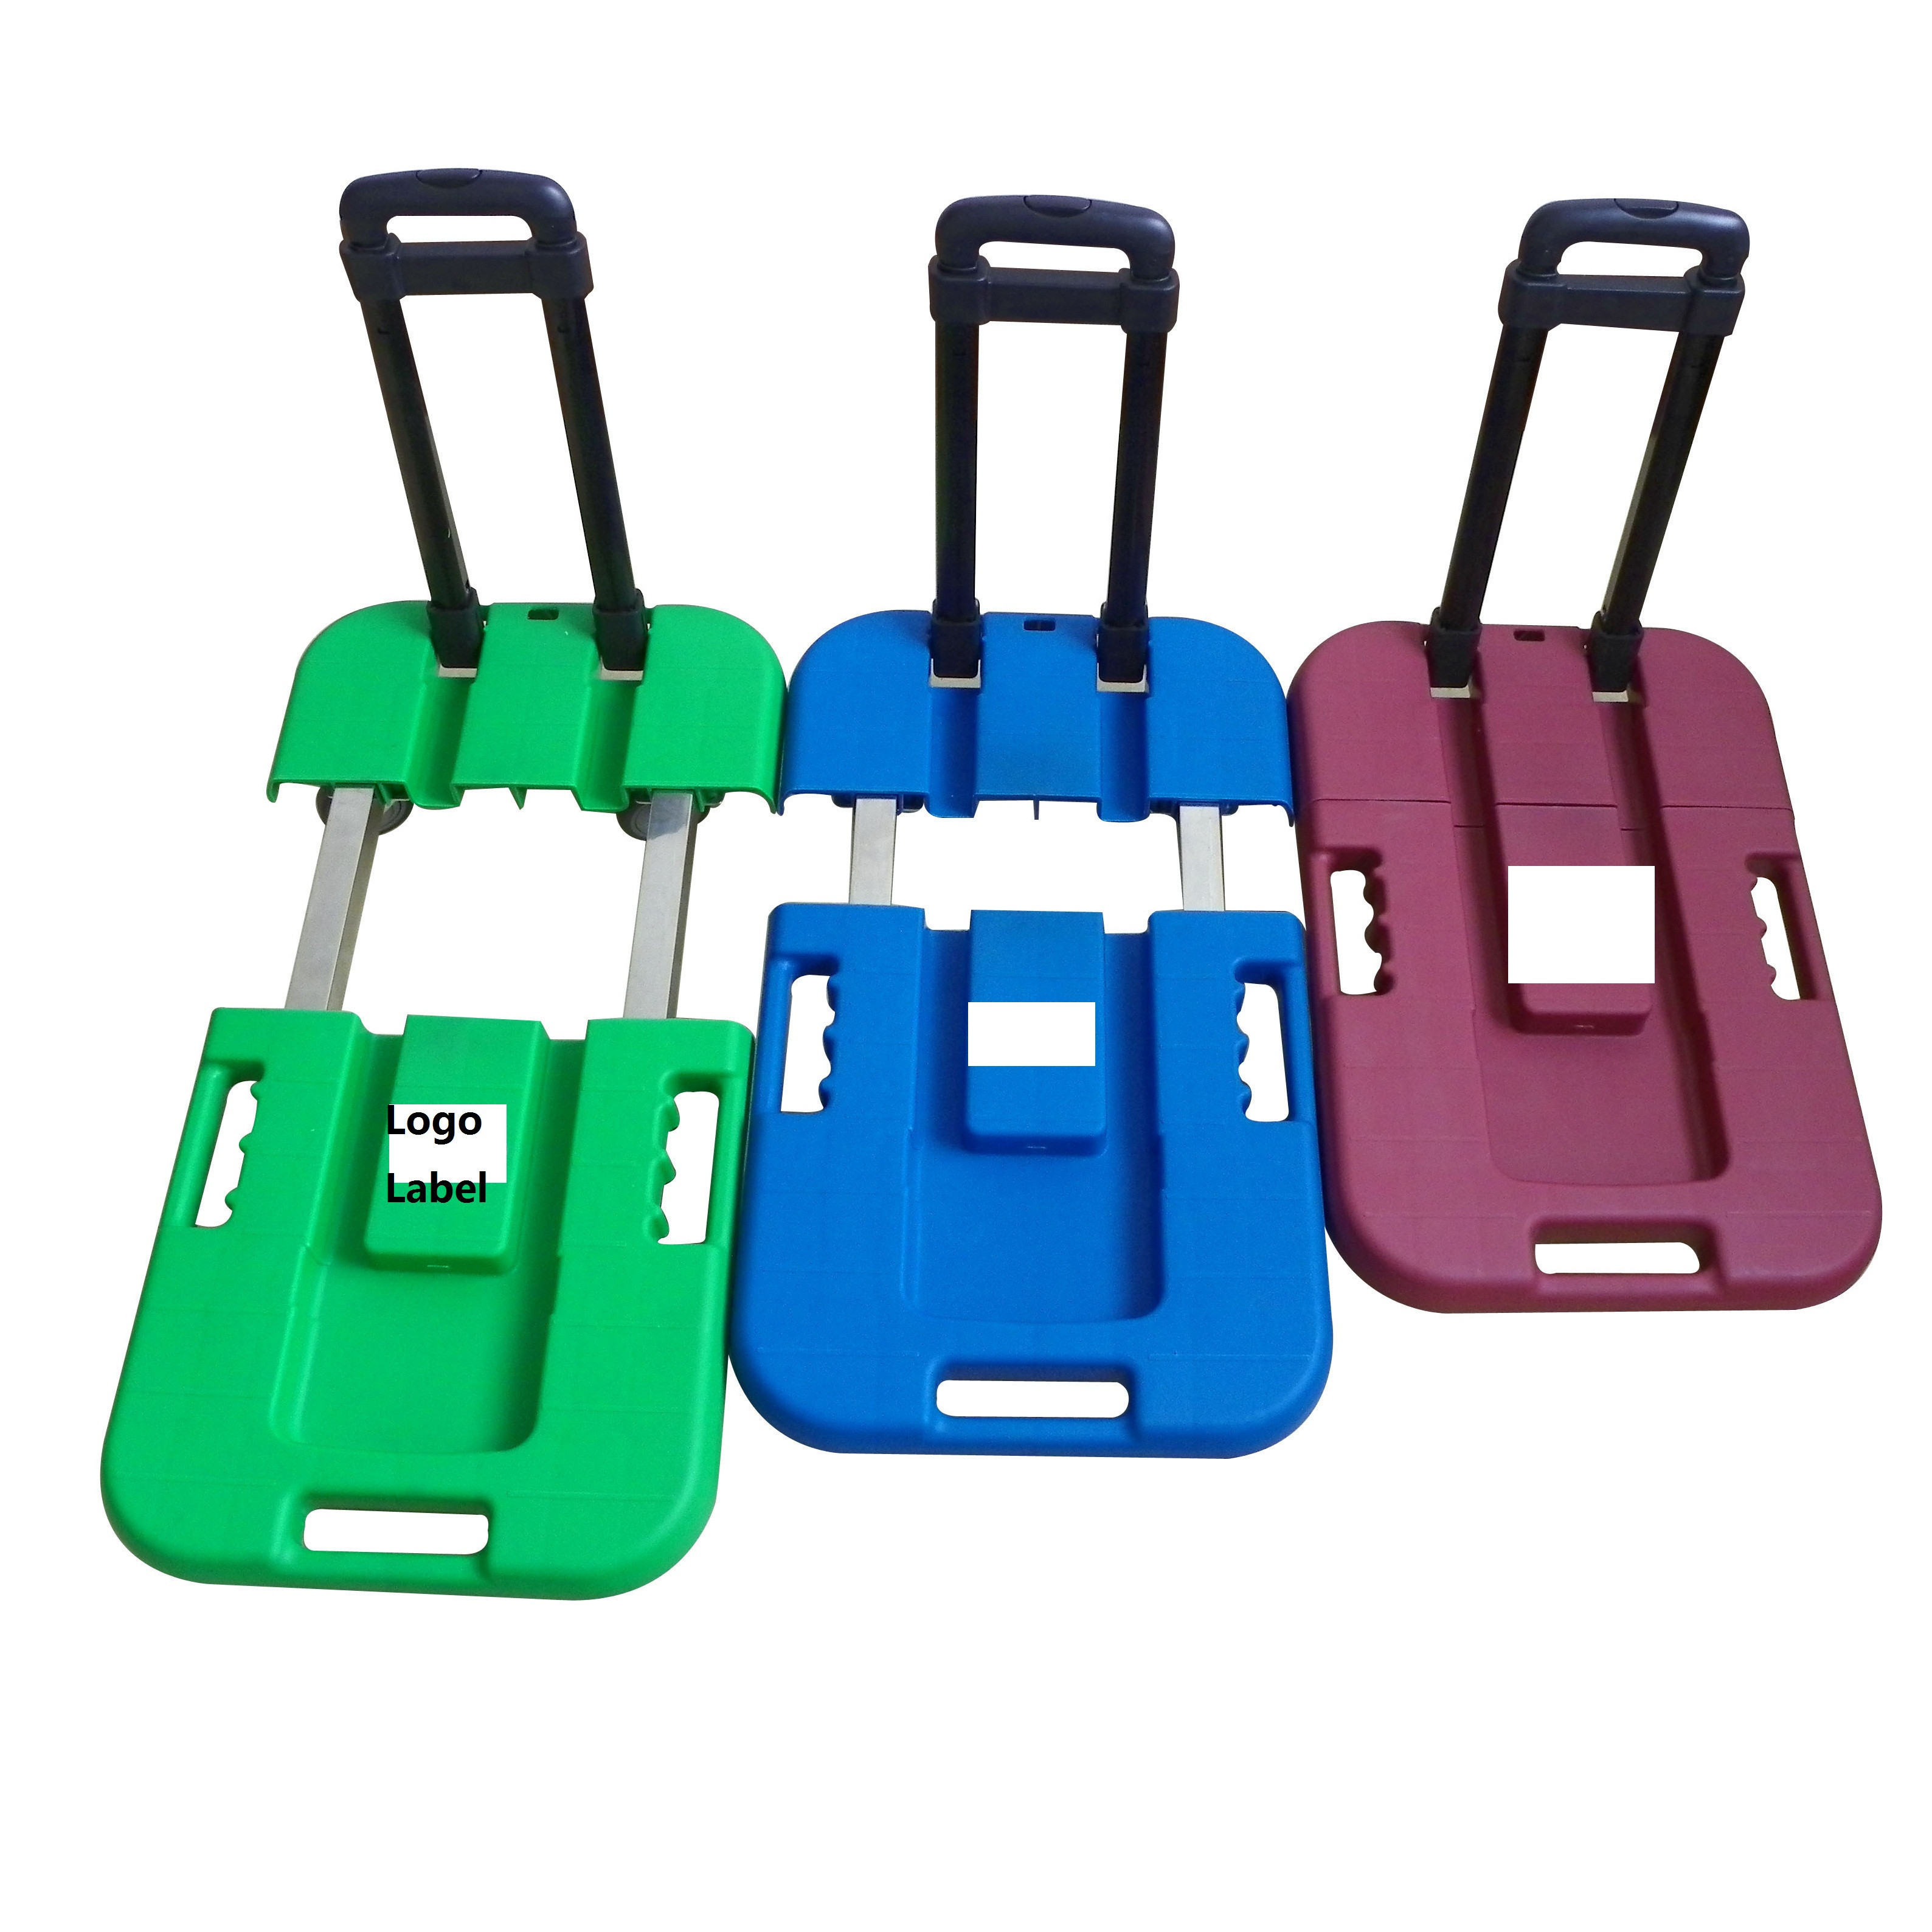 Retractable collapsible folding wheel dolly trolley tool cart